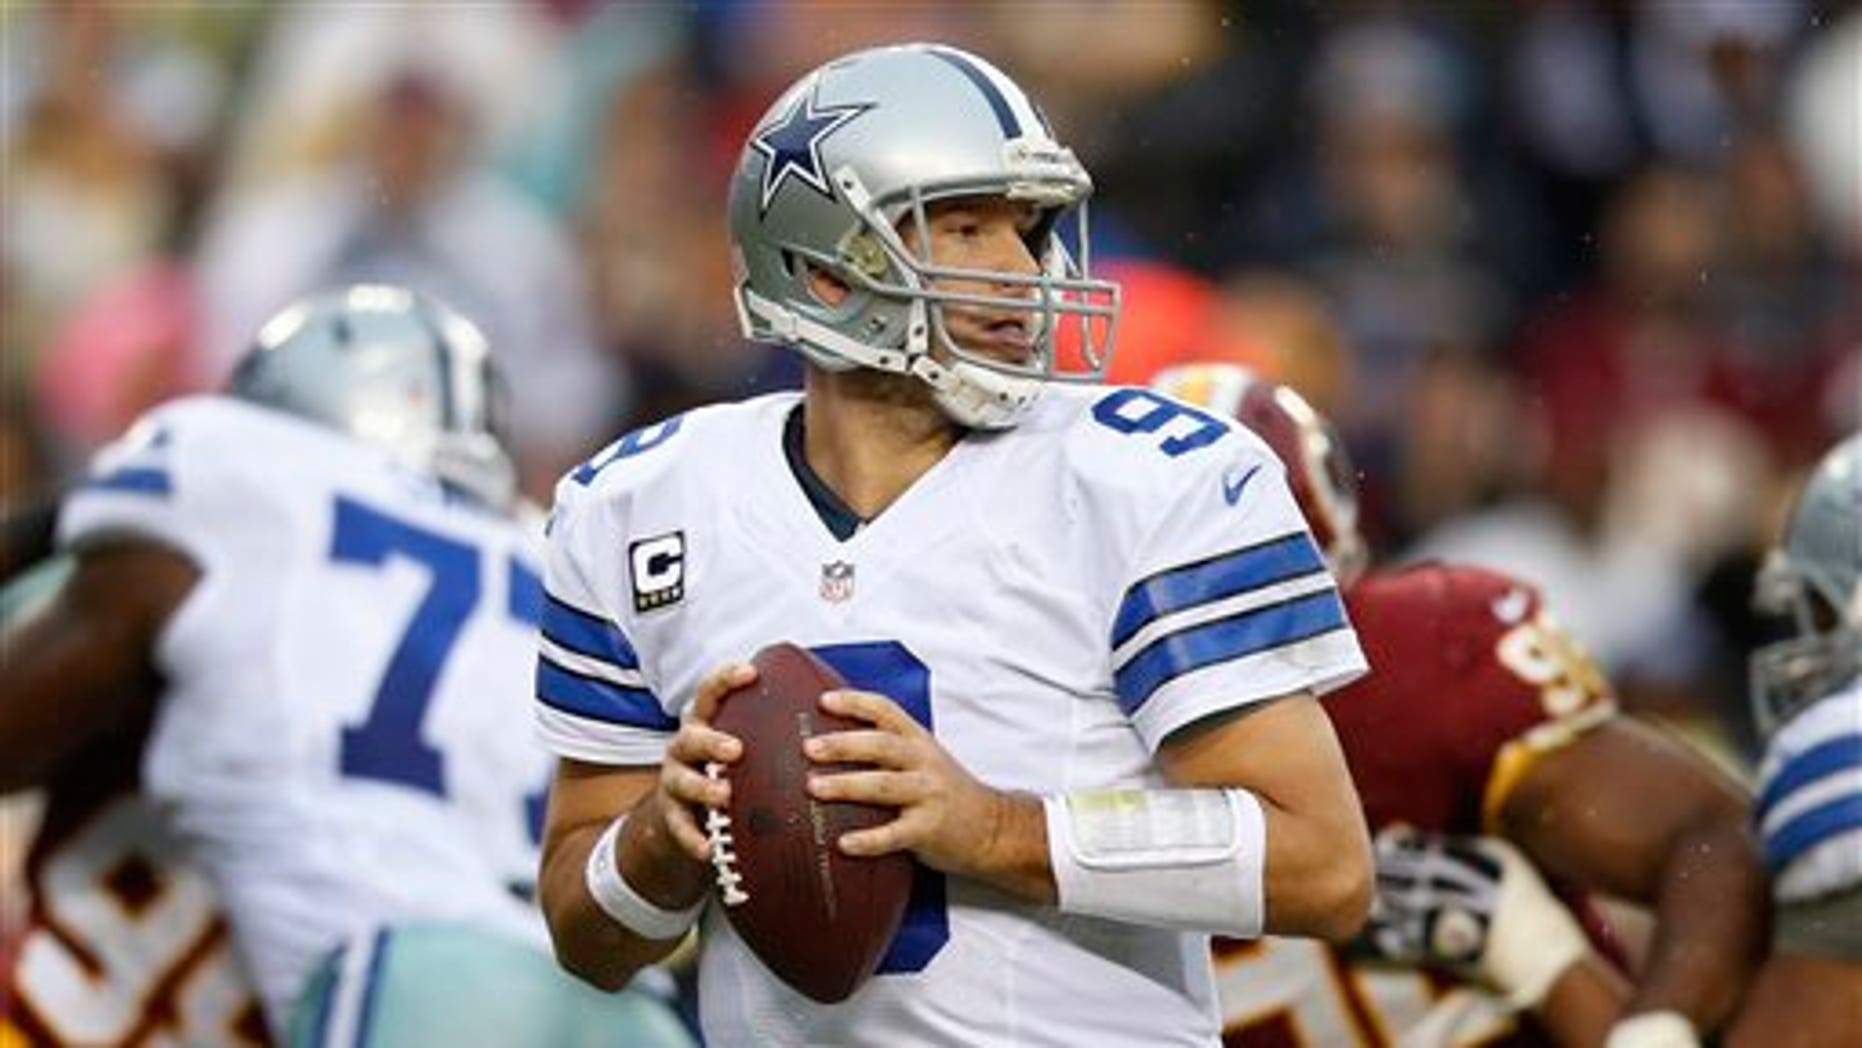 Dallas Cowboys quarterback Tony Romo looks for an opening to pass during the second half of an NFL football game against the Washington Redskins in Landover, Md., Sunday, Dec. 22, 2013. (AP Photo/Evan Vucci)